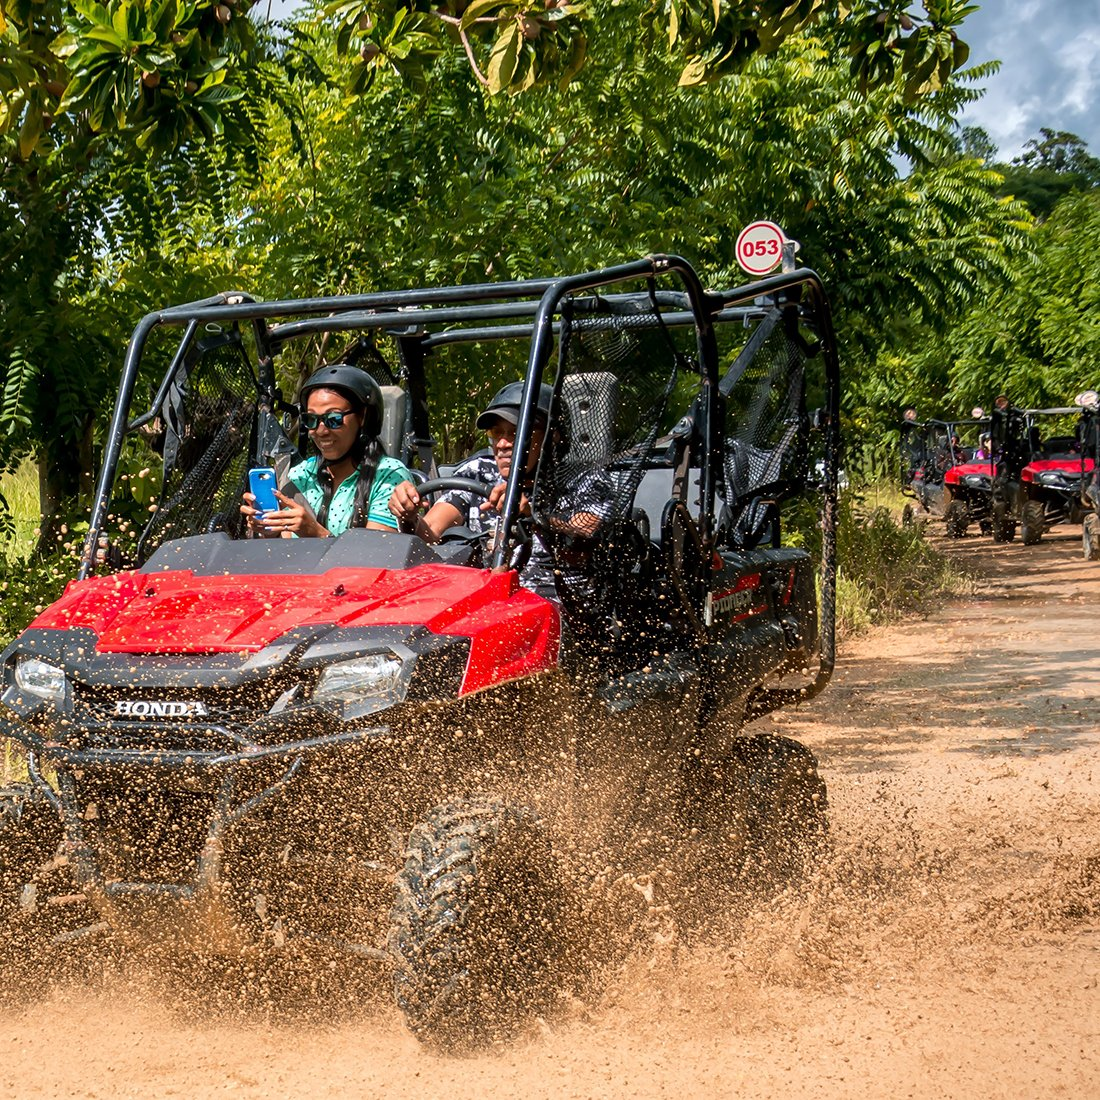 Punta Cana off Road Buggy Tour